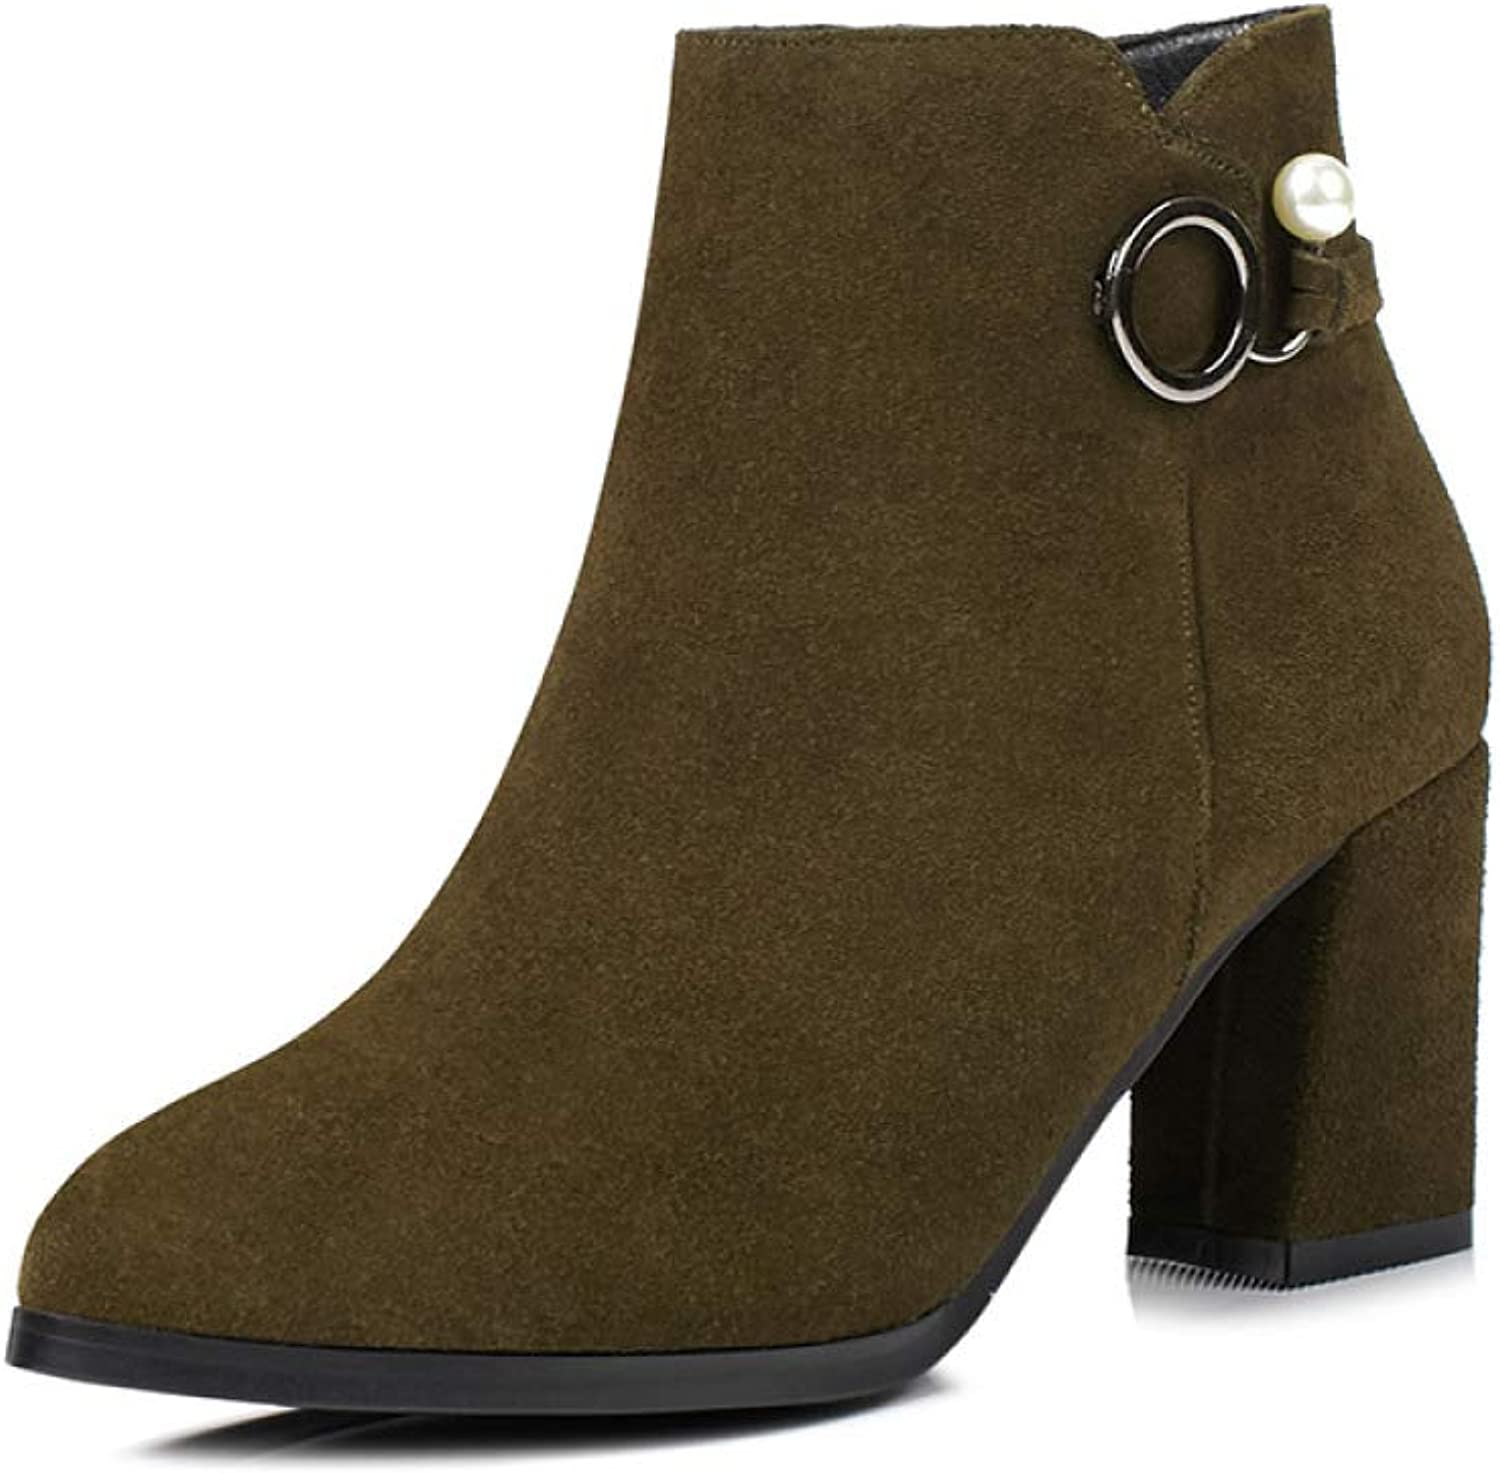 Women Simple Pointed Ankle Boots 2018 Autumn Winter Heel Martin Boots Size 33-43